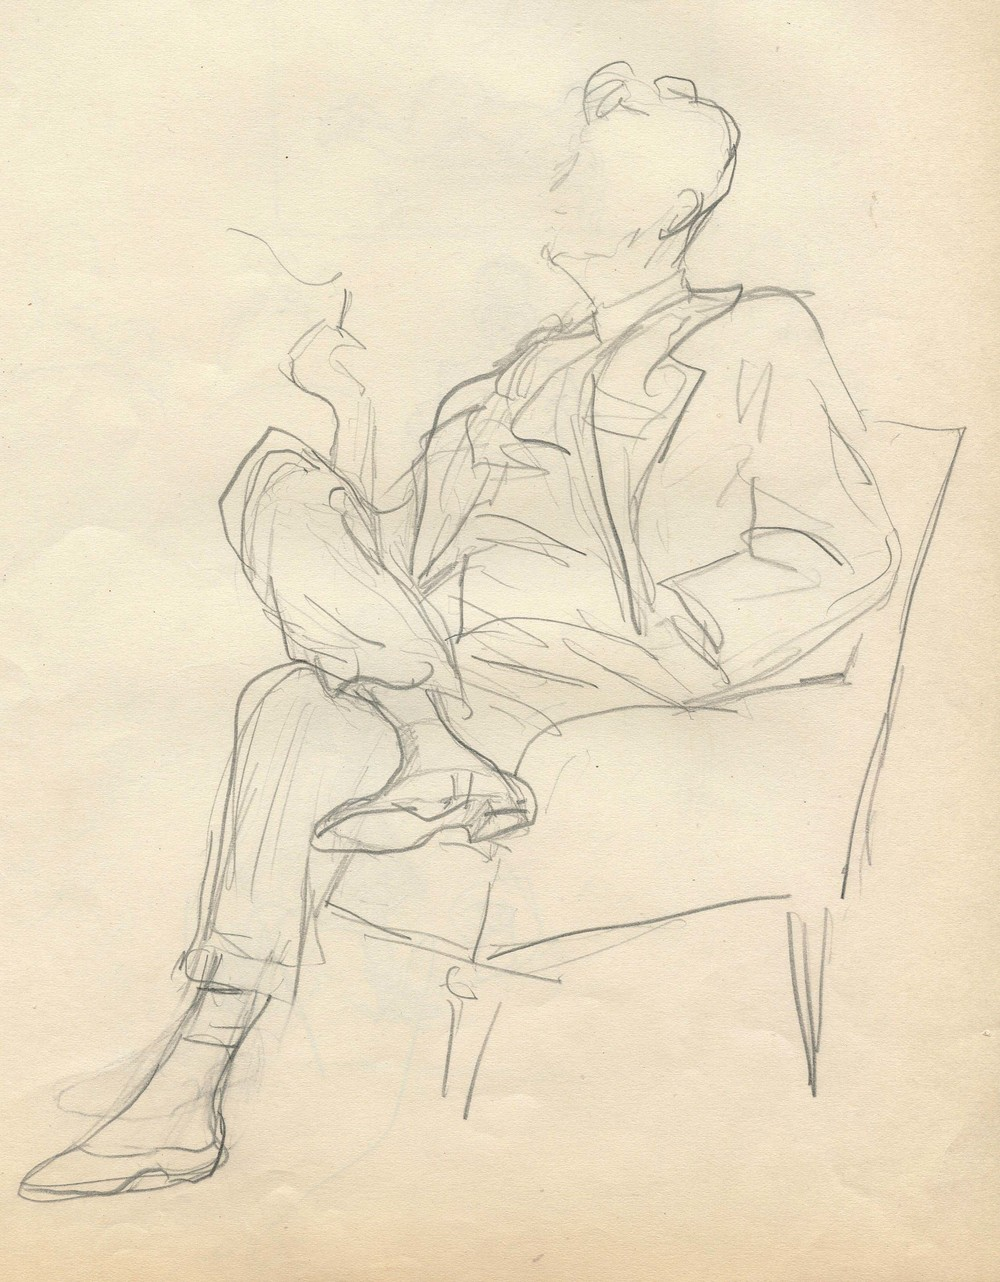 MSB, Leonard in his Element at the San Carlos Hotel; New York Cartoon Series, 1951.